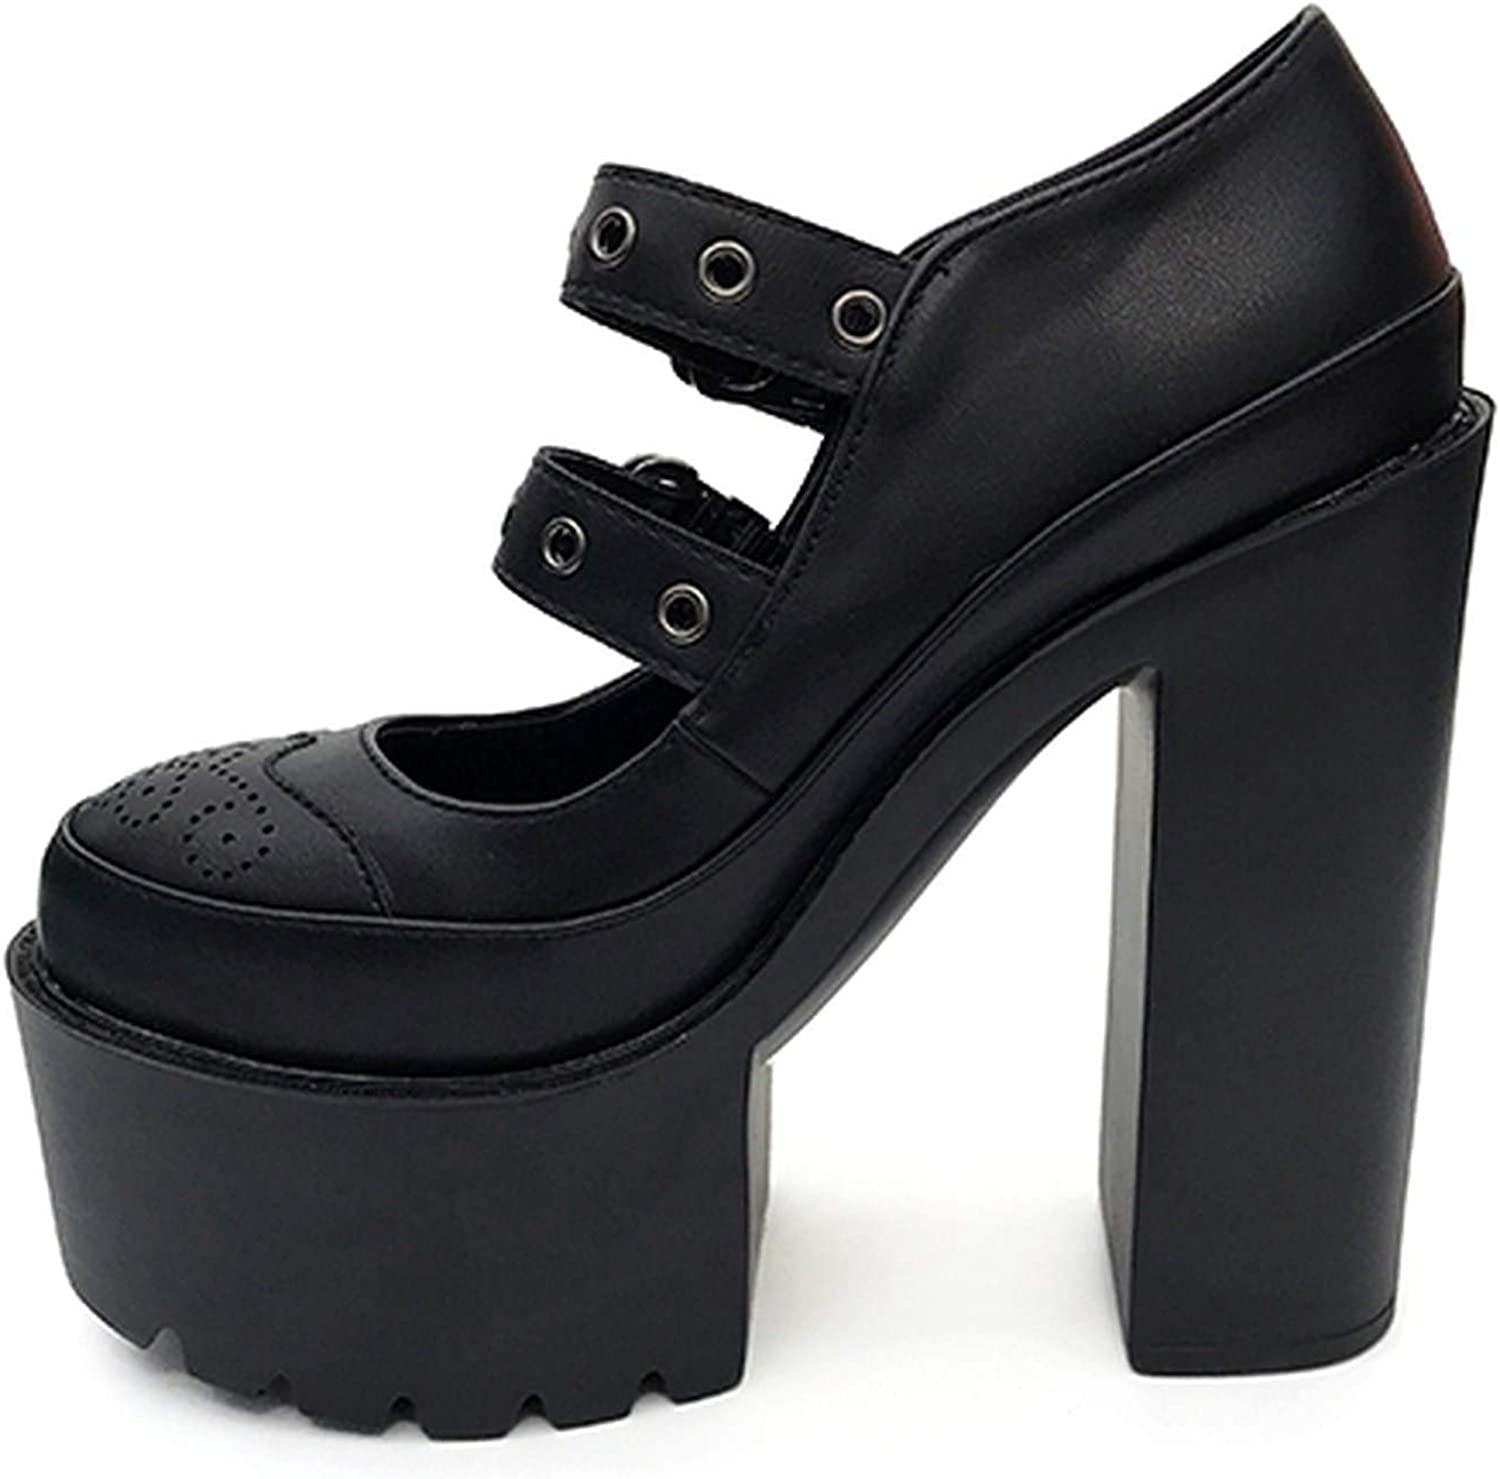 Summer-lavender Women Pumps High Heels Black Rubber Sole Platform shoes Round Toe Leather Mary Janes shoes